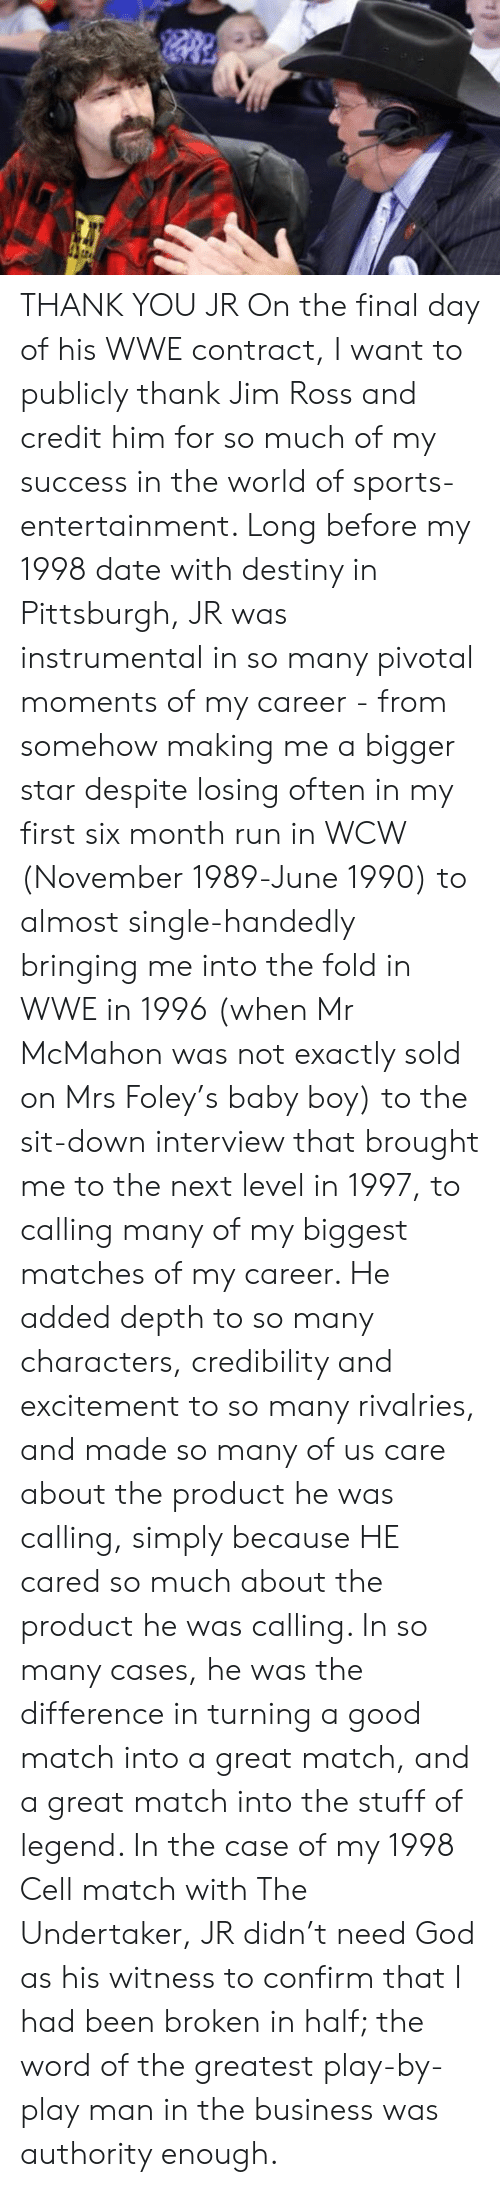 Destiny, God, and Jim Ross: THANK YOU JR  On the final day of his WWE contract, I want to publicly thank Jim Ross and credit him for so much of my success in the world of sports-entertainment. Long before my 1998 date with destiny in Pittsburgh, JR was instrumental in so many pivotal moments of my career - from somehow making me a bigger star despite losing often in my first six month run in WCW (November 1989-June 1990) to almost single-handedly bringing me into the fold in WWE in 1996 (when Mr McMahon was not exactly sold on Mrs Foley's baby boy) to the sit-down interview that brought me to the next level in 1997, to calling many of my biggest matches of my career. He added depth to so many characters, credibility and excitement to so many rivalries, and made so many of us care about the product he was calling, simply because HE cared so much about the product he was calling. In so many cases, he was the difference in turning a good match into a great match, and a great match into the stuff of legend. In the case of my 1998 Cell match with The Undertaker, JR didn't need God as his witness to confirm that I had been broken in half; the word of the greatest play-by-play man in the business was authority enough.